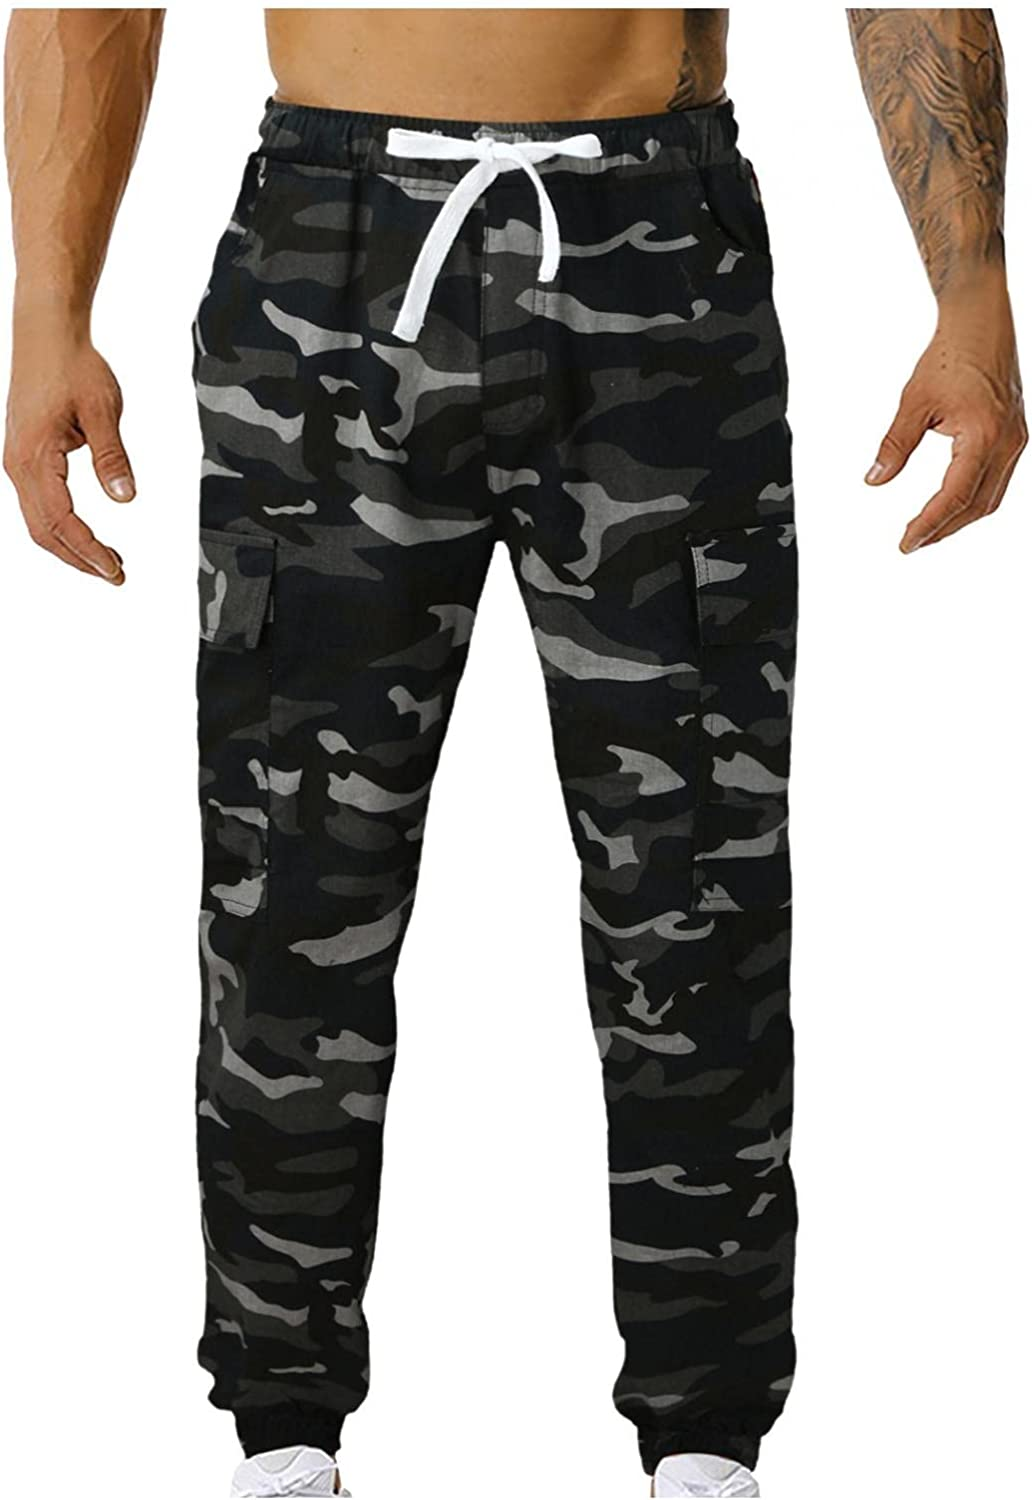 Beshion Mens Jogger Sweatpants Slim Fit Overalls Military Camouflage Combat Cargo Pant Mid-Waist Athletic Running Trousers